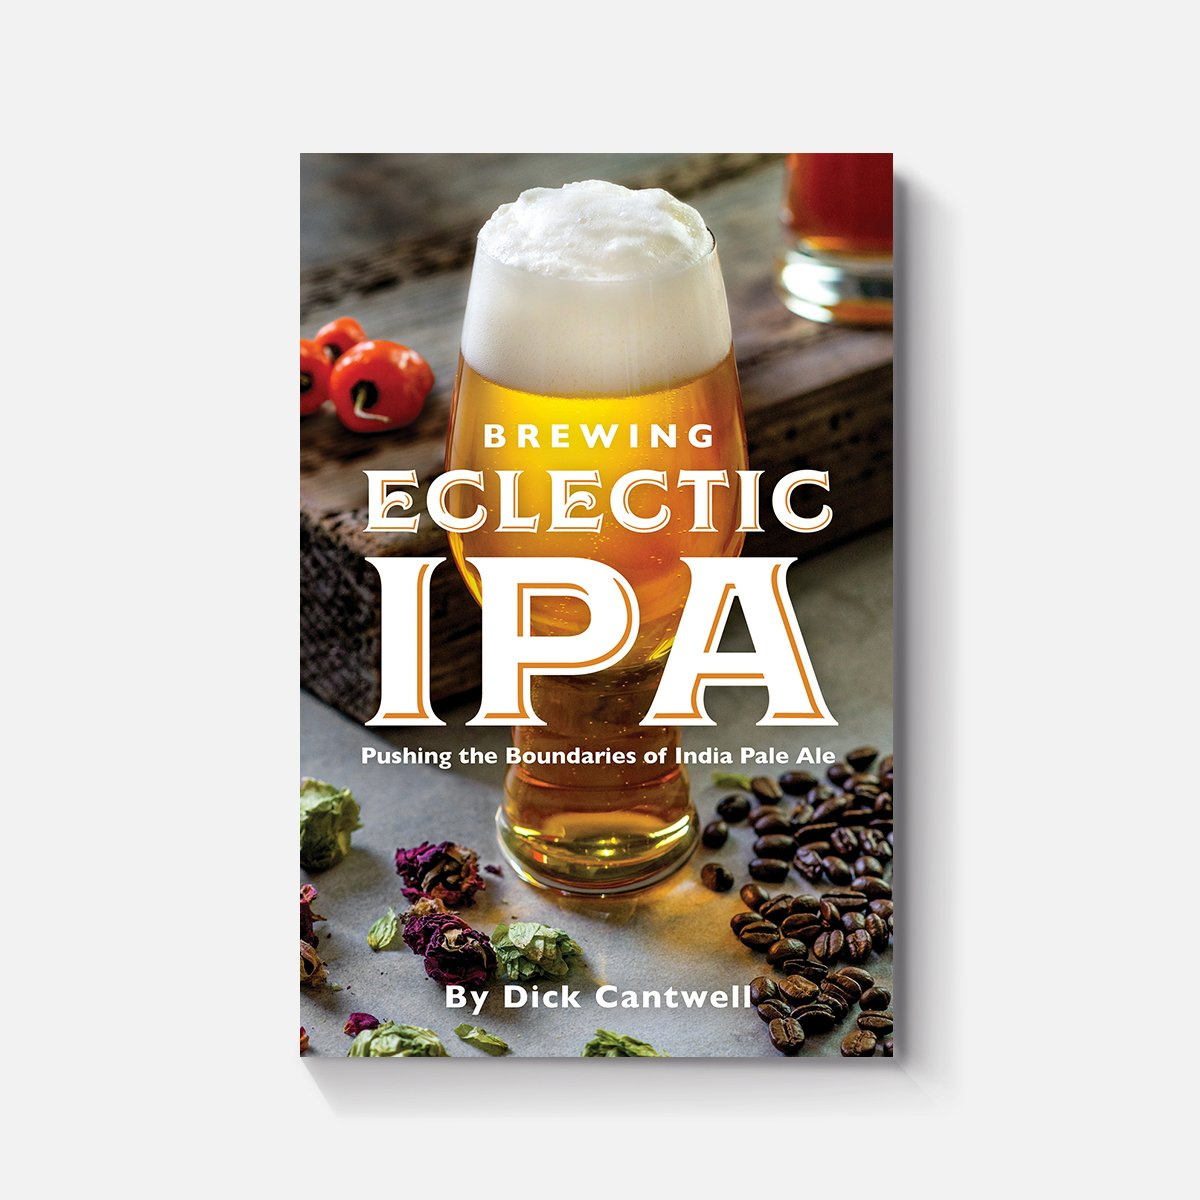 image sourced from  Brewers Publications